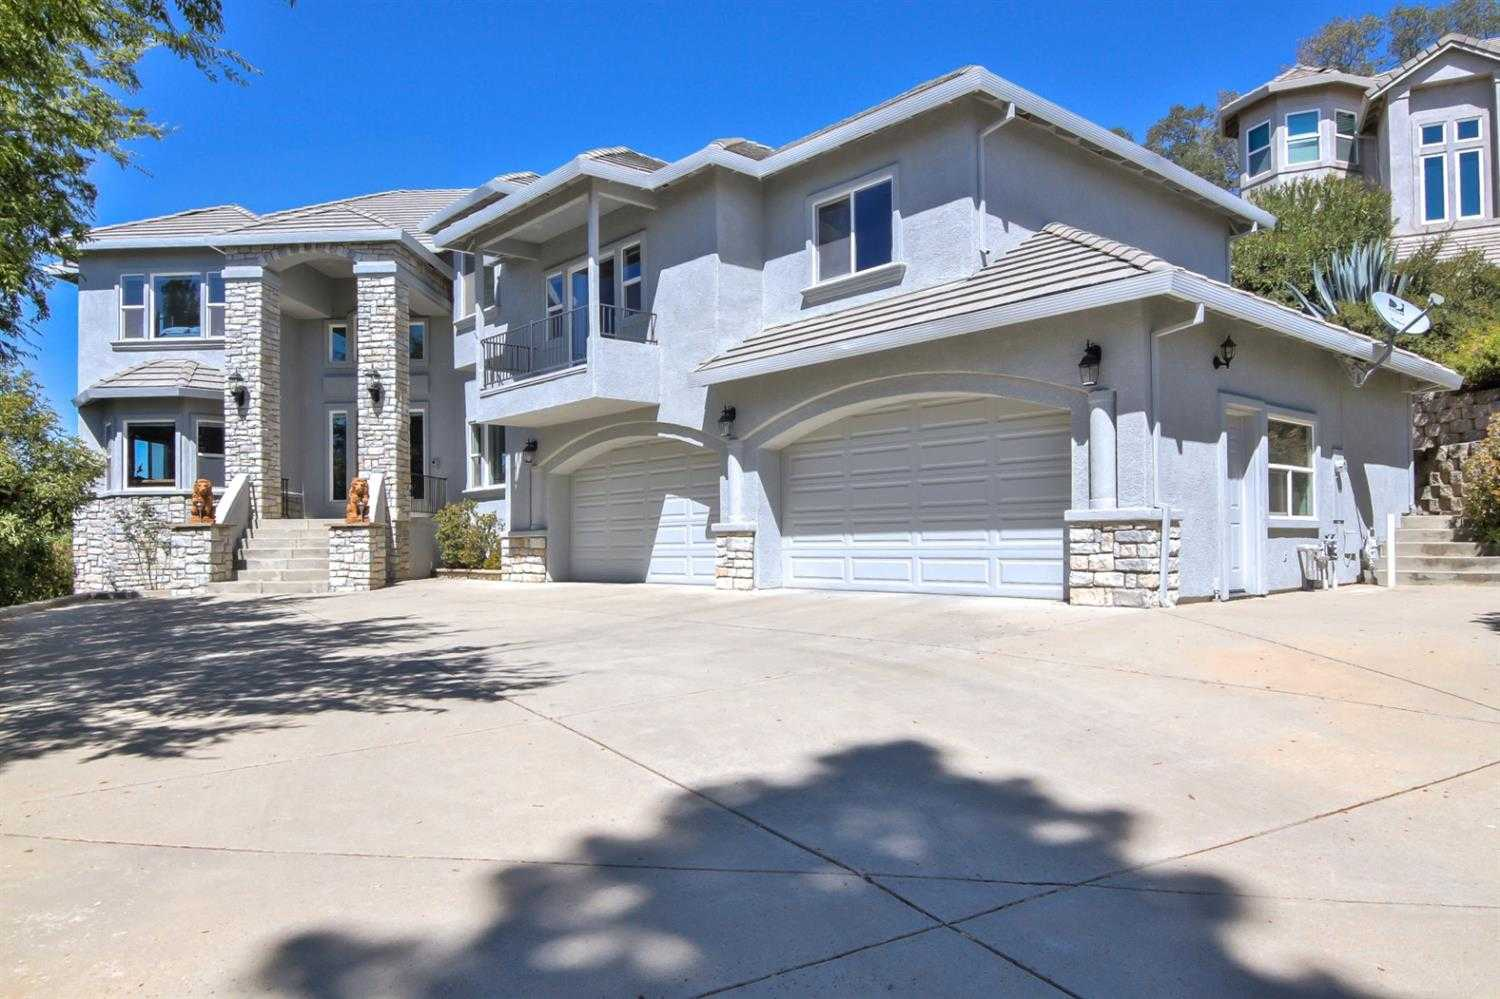 $896,000 - 5Br/5Ba -  for Sale in Ridgeview Village, El Dorado Hills